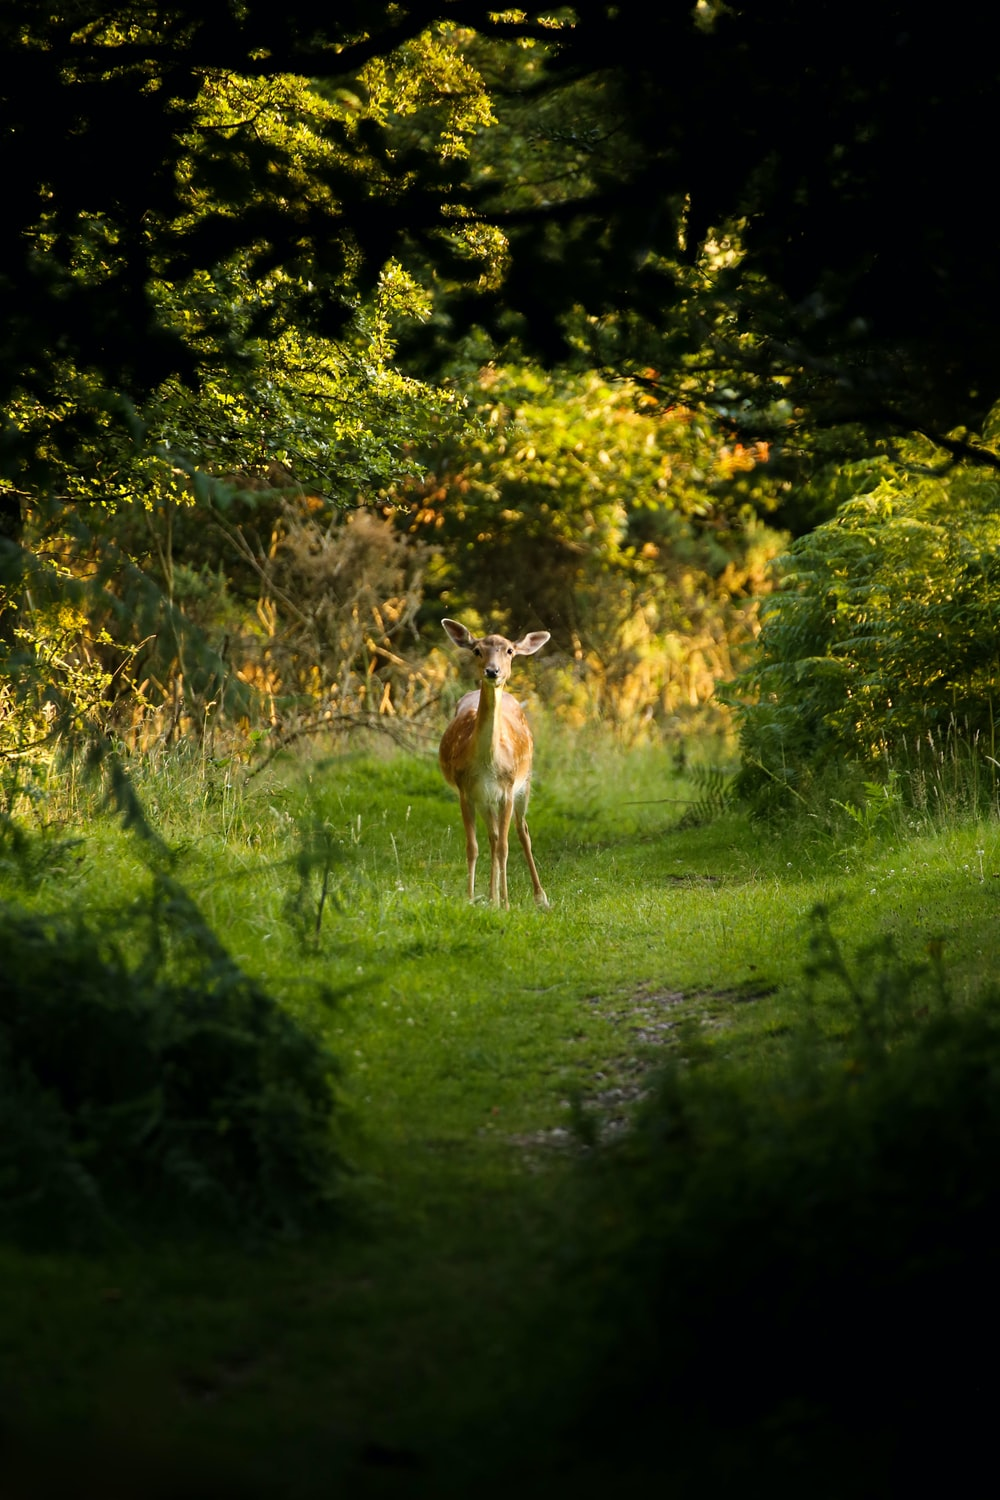 brown deer standing of grass field surrounded by trees